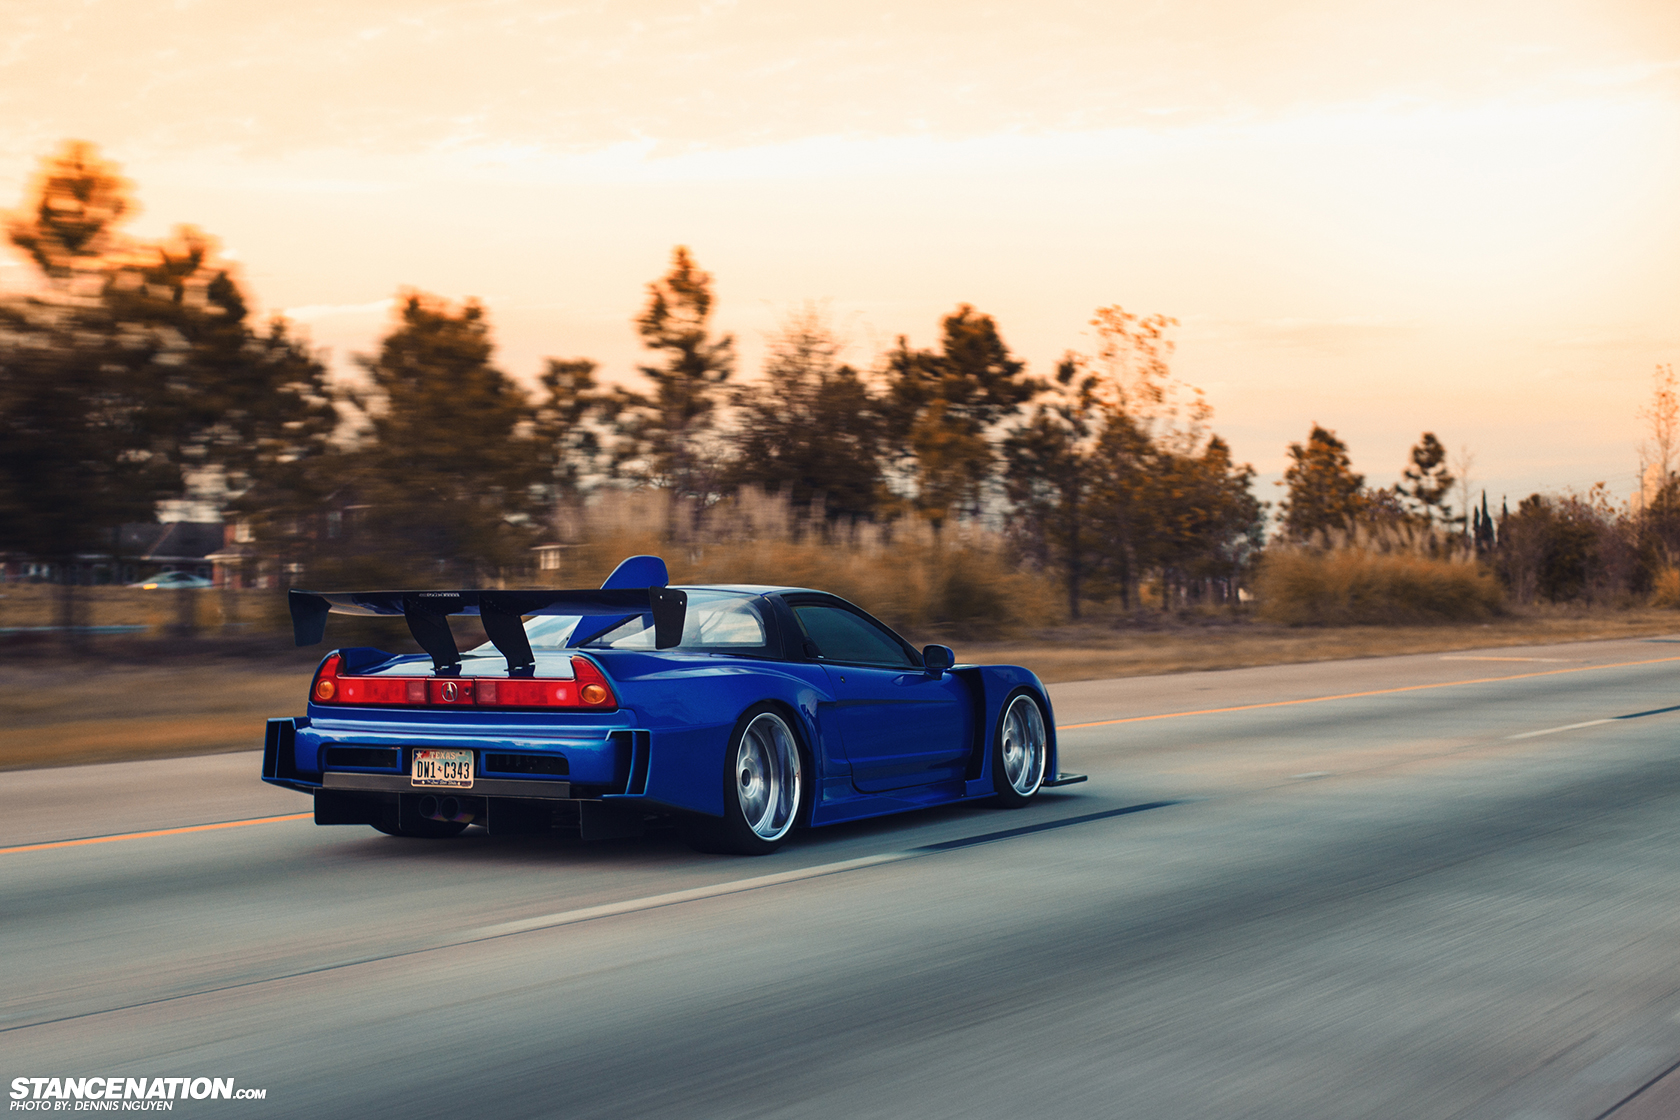 Stance Nation Nsx Stance Nation Form gt